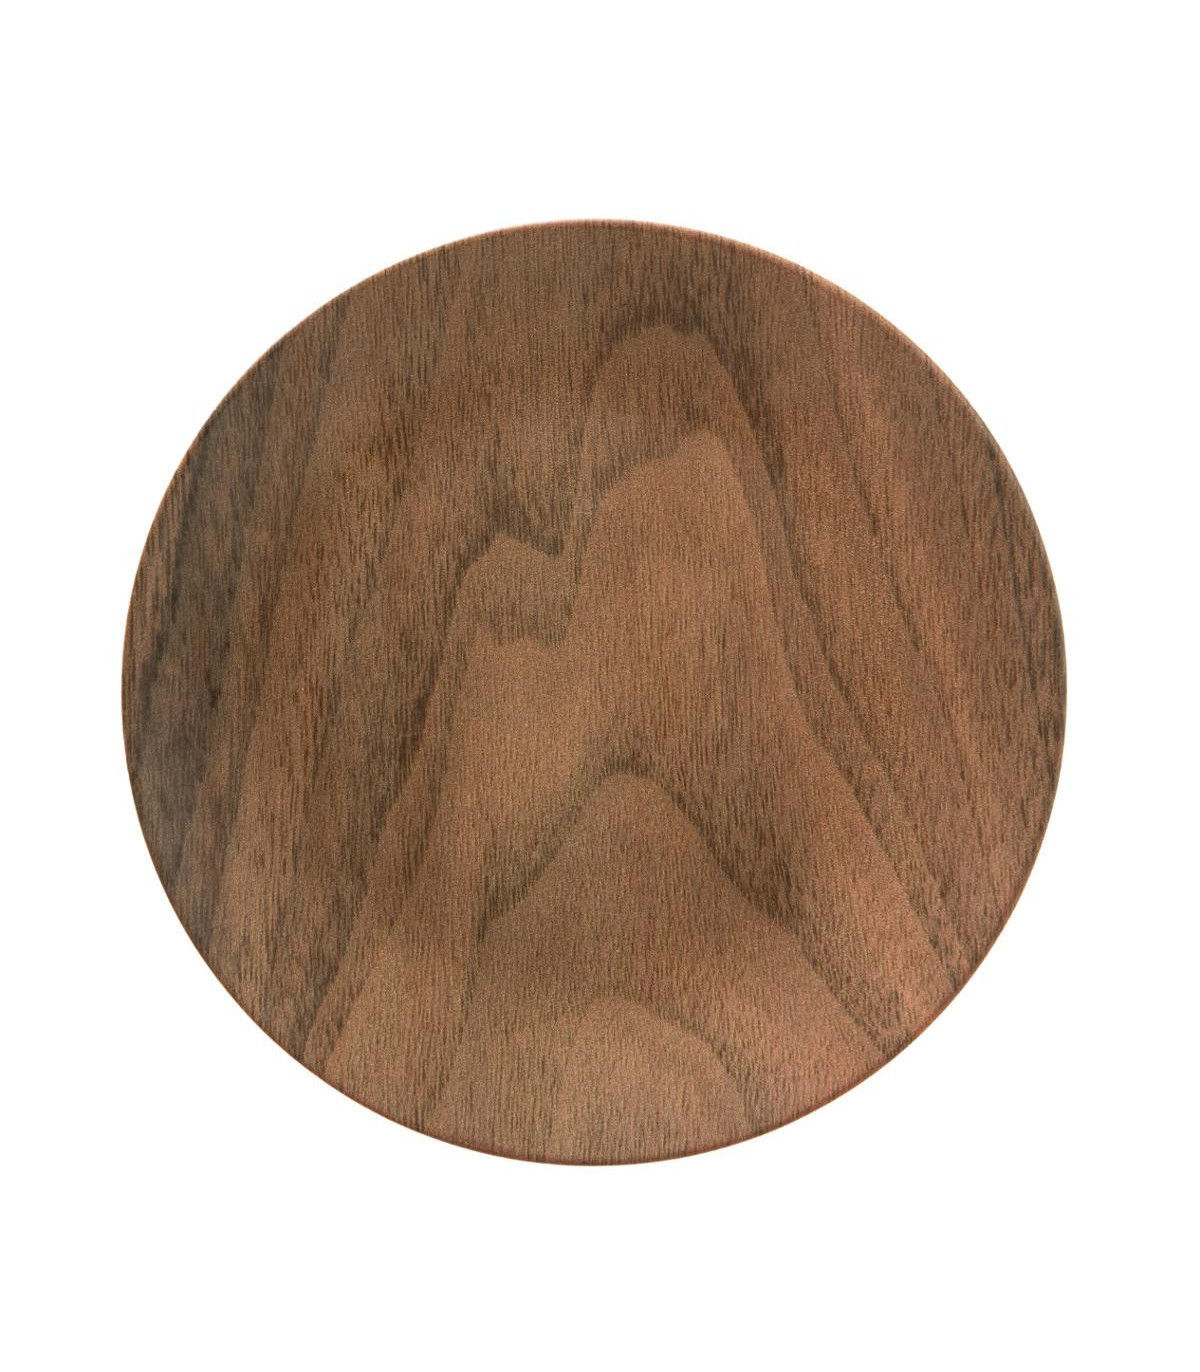 Picture of KERAMIČKI TANJUR NATURAL WOOD PLITKI 26 CM